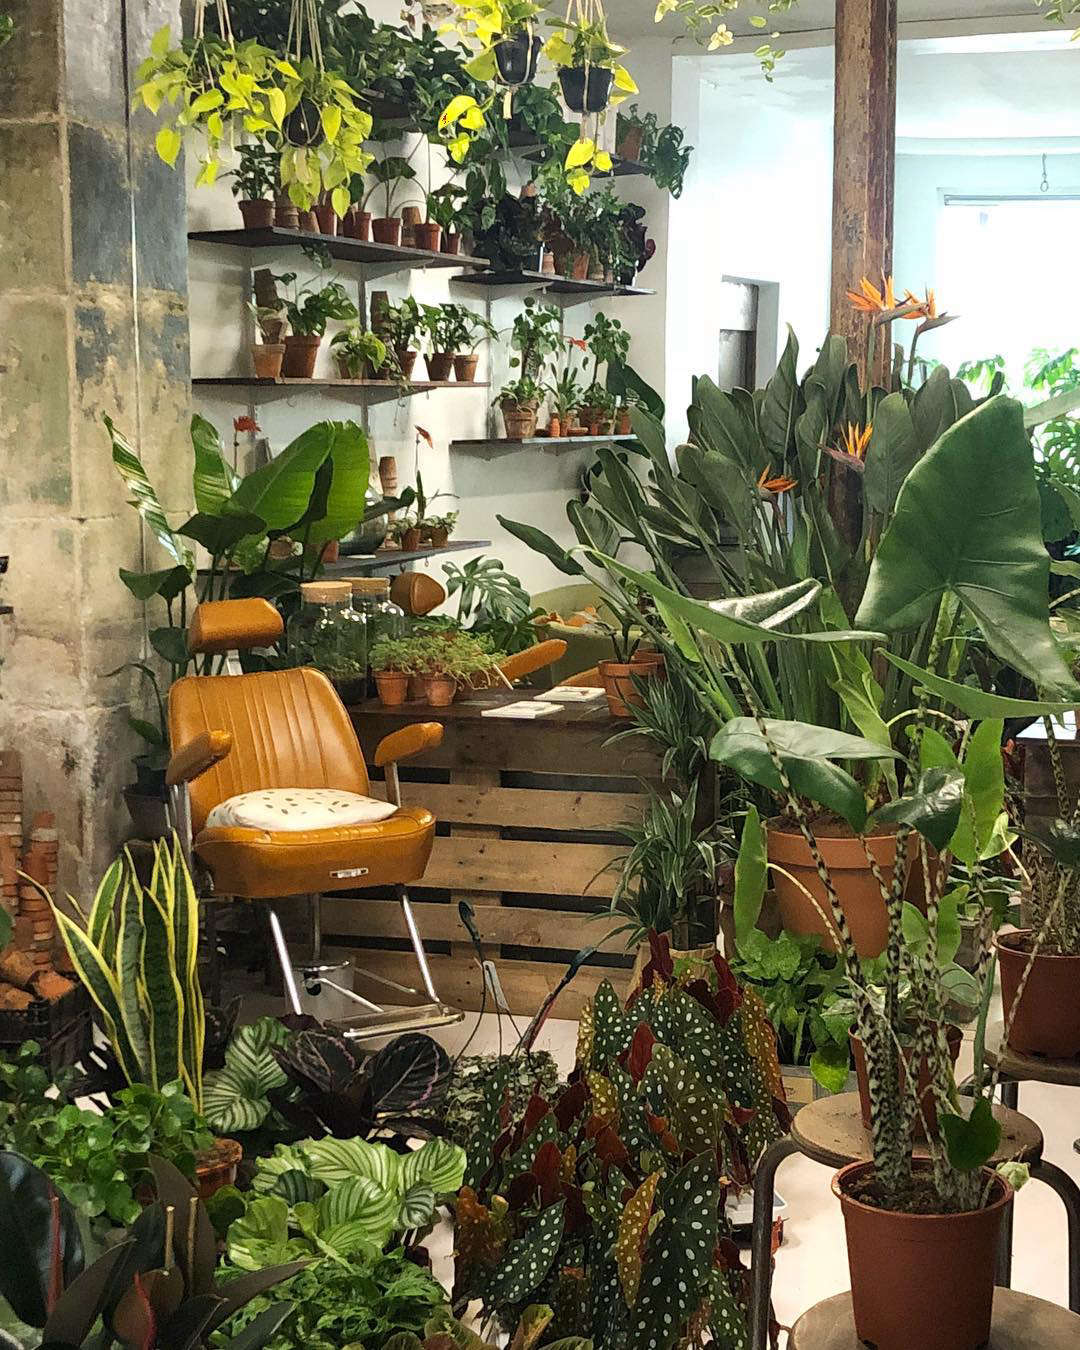 Wooden pallets have been put to use as room dividers and plant shelves. The salon has two chairs, but will increase to six at the new location.